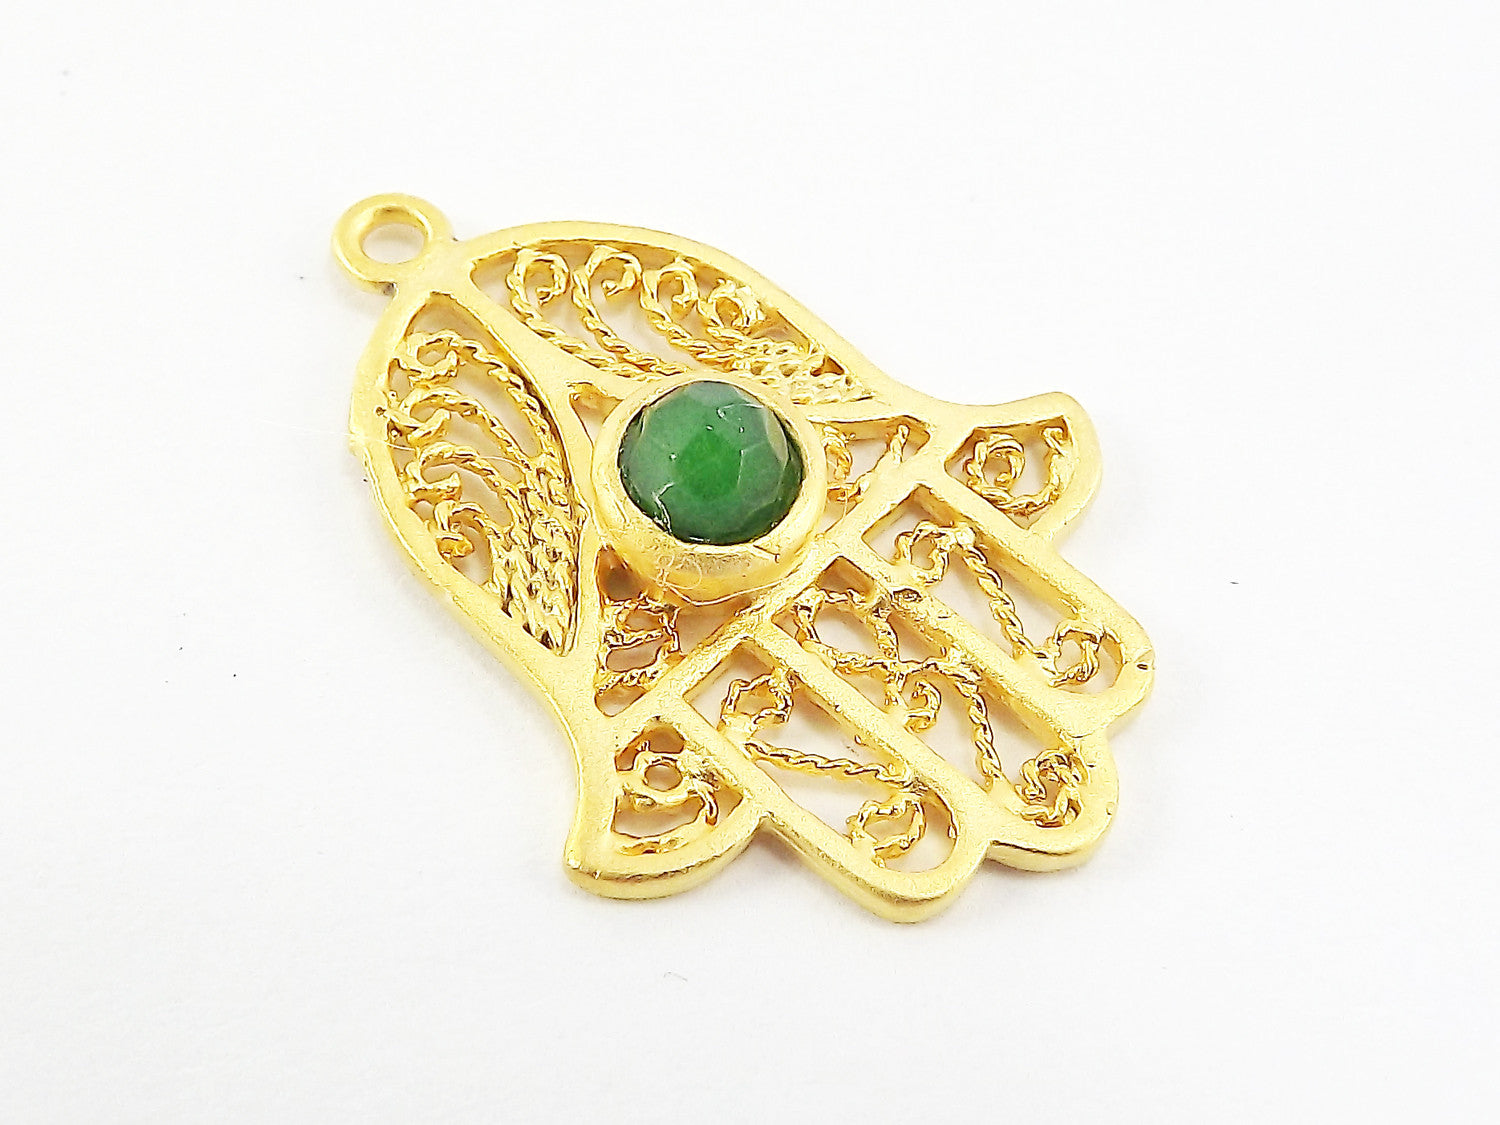 Filigree Hand of Fatima Hamsa Pendant Charm with Emerald Green Facet Cut Jade Accent- 22k Matte Gold Plated